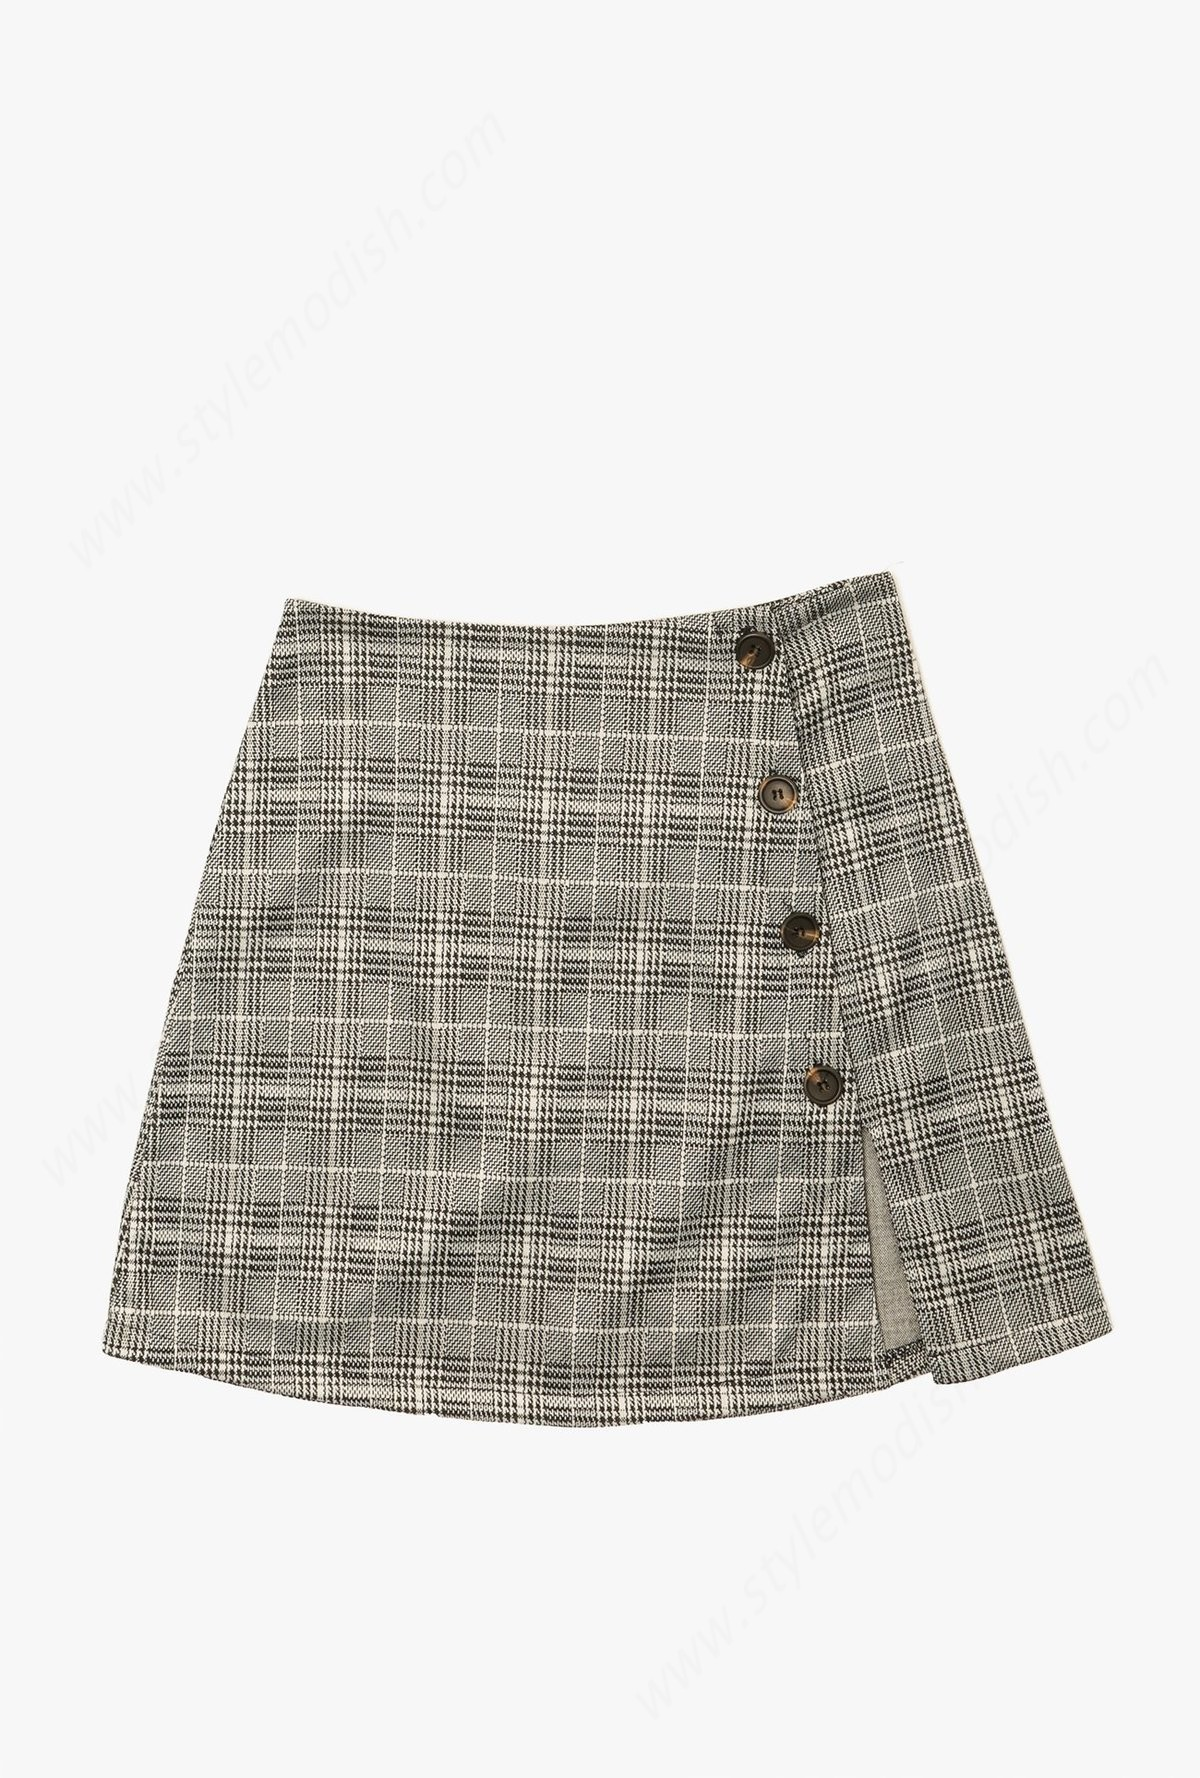 Lady's Azalea Plaid Skirt - Grey - -4